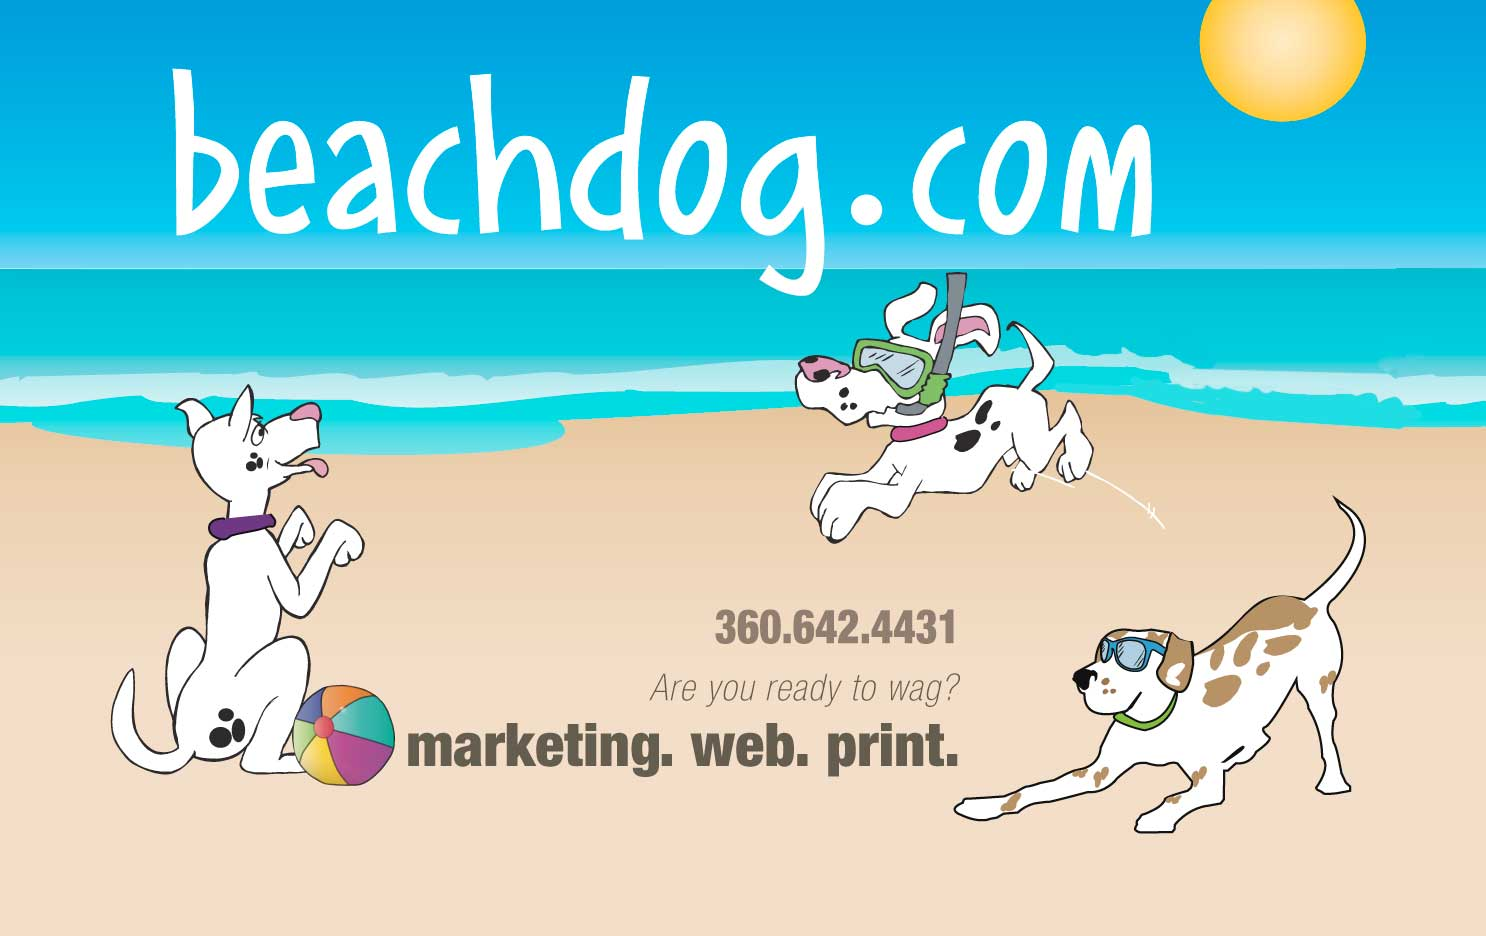 beachdog.com: web. print. marketing